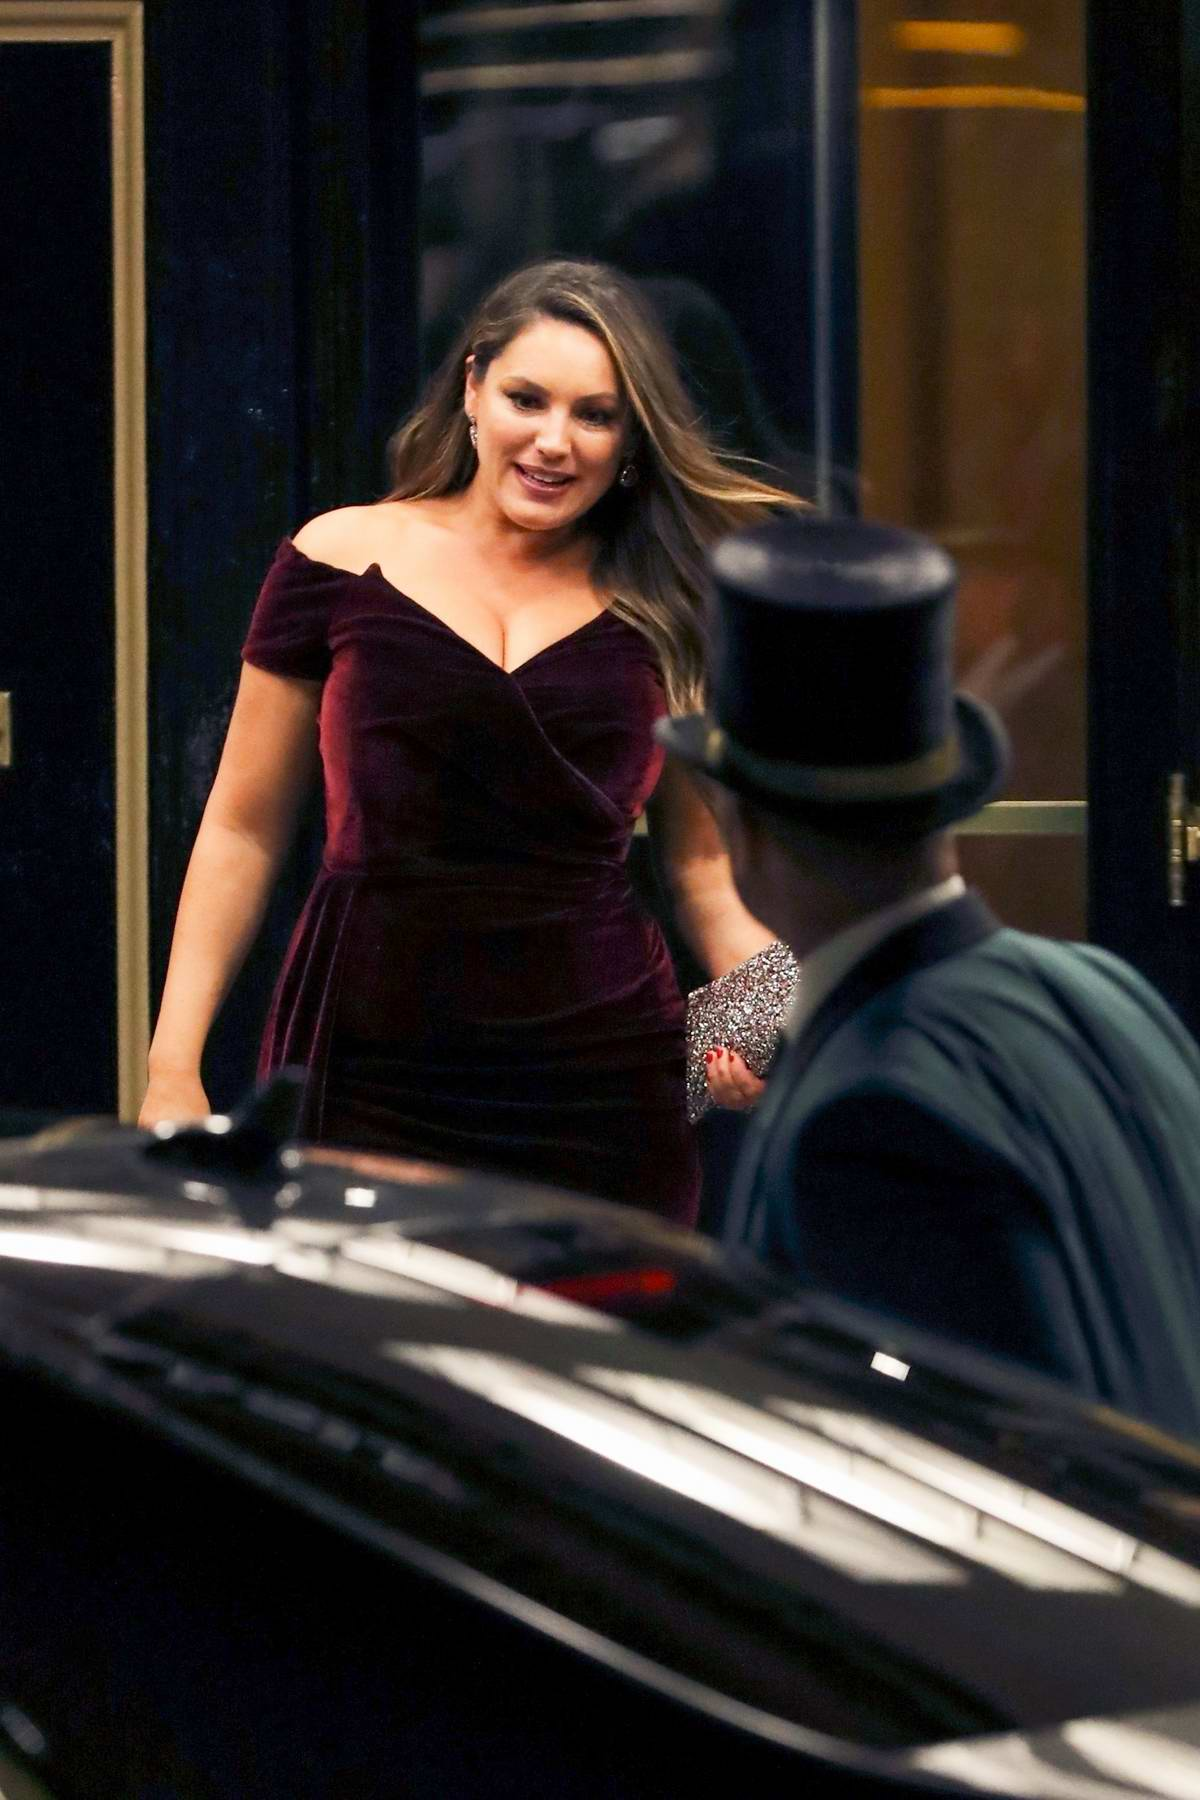 Kelly Brook spotted leaving The Dorchester Hotel in London, UK